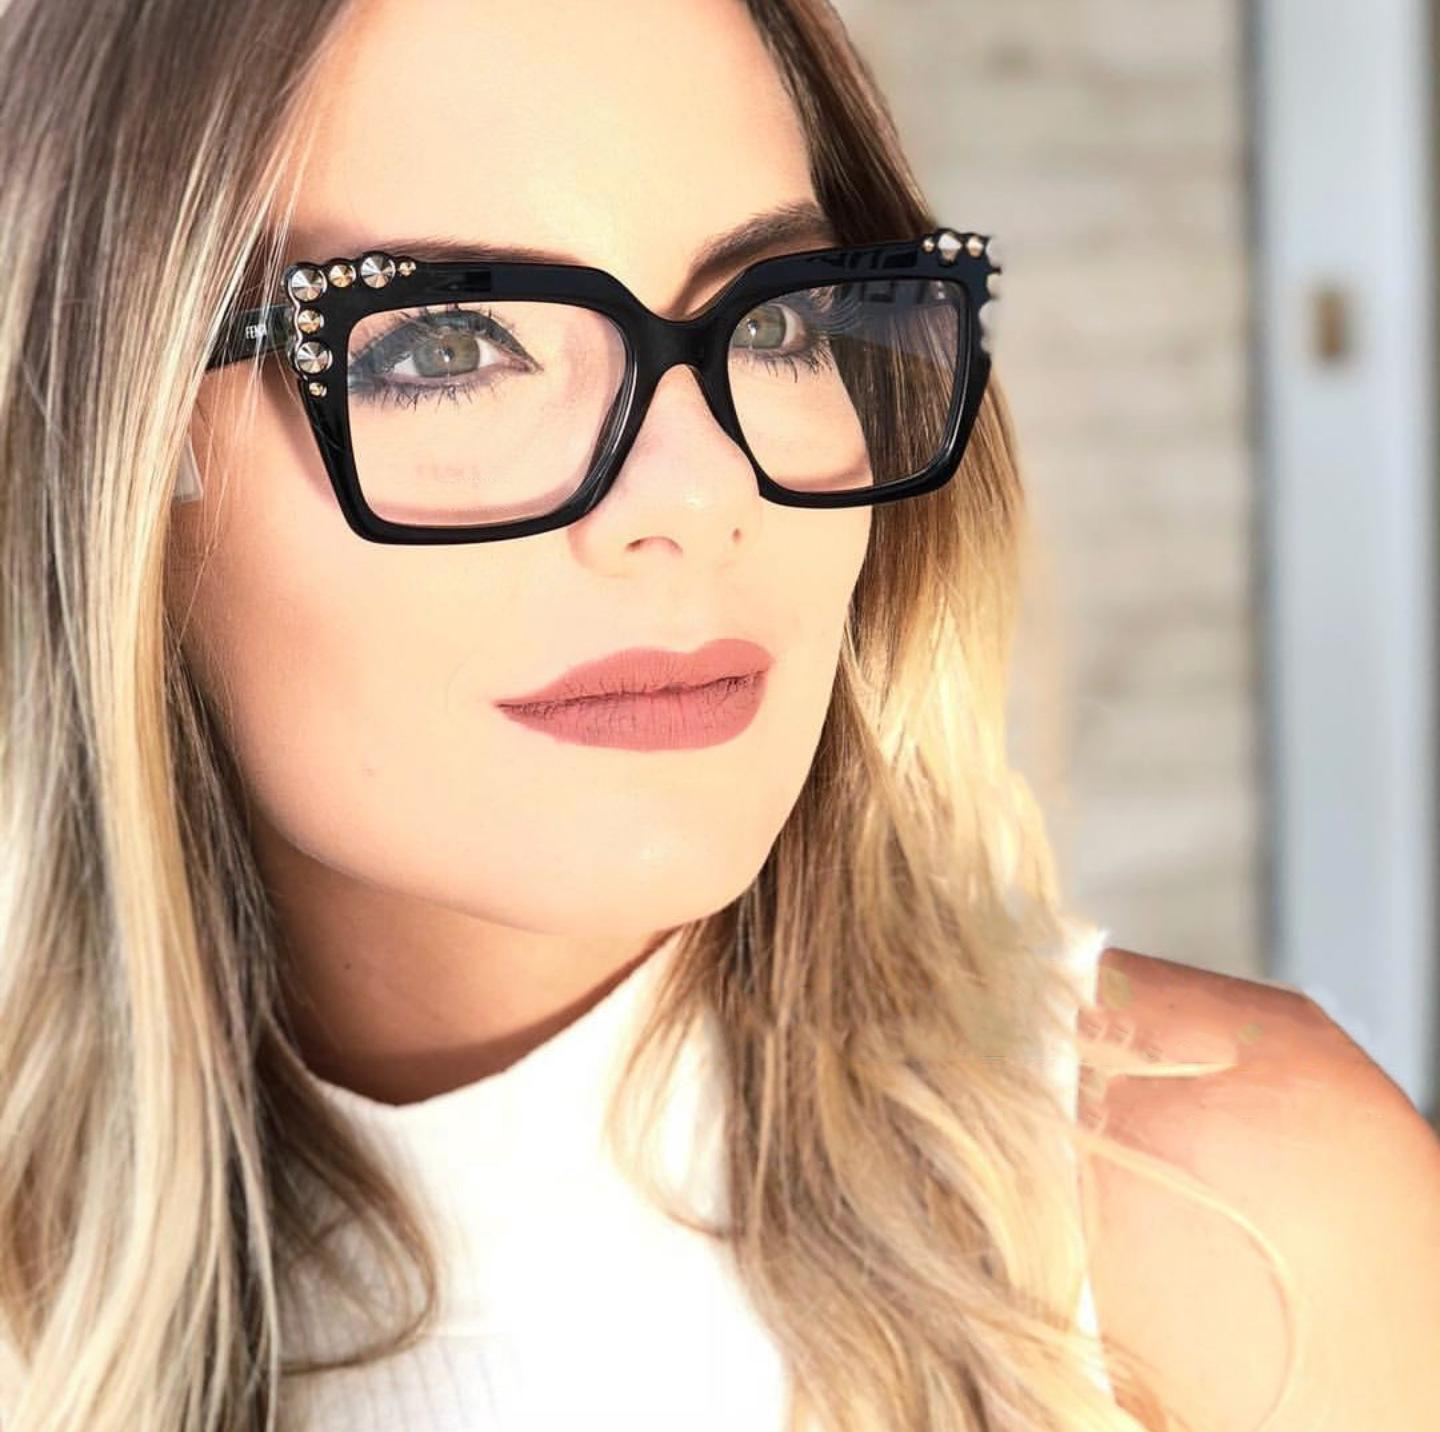 143b7e2402bb 2018 Lady Square Glasses Women Metal Rivet Cat Eye Glasses Frames CCSPACE  45546 Optical Fashion Eyewear Computer Glasses Eyeglass Frames For Small  Faces ...